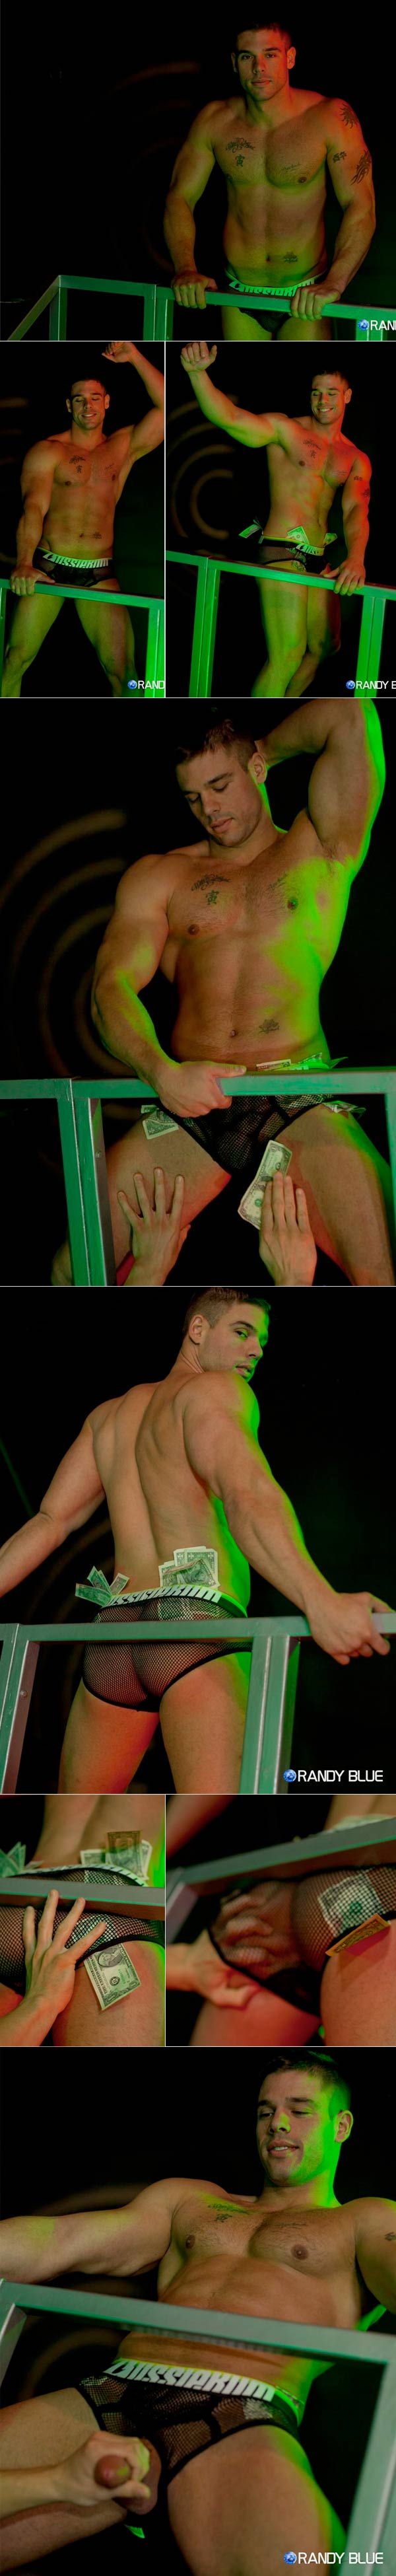 Chris Rockway & Derek Atlas at RandyBlue